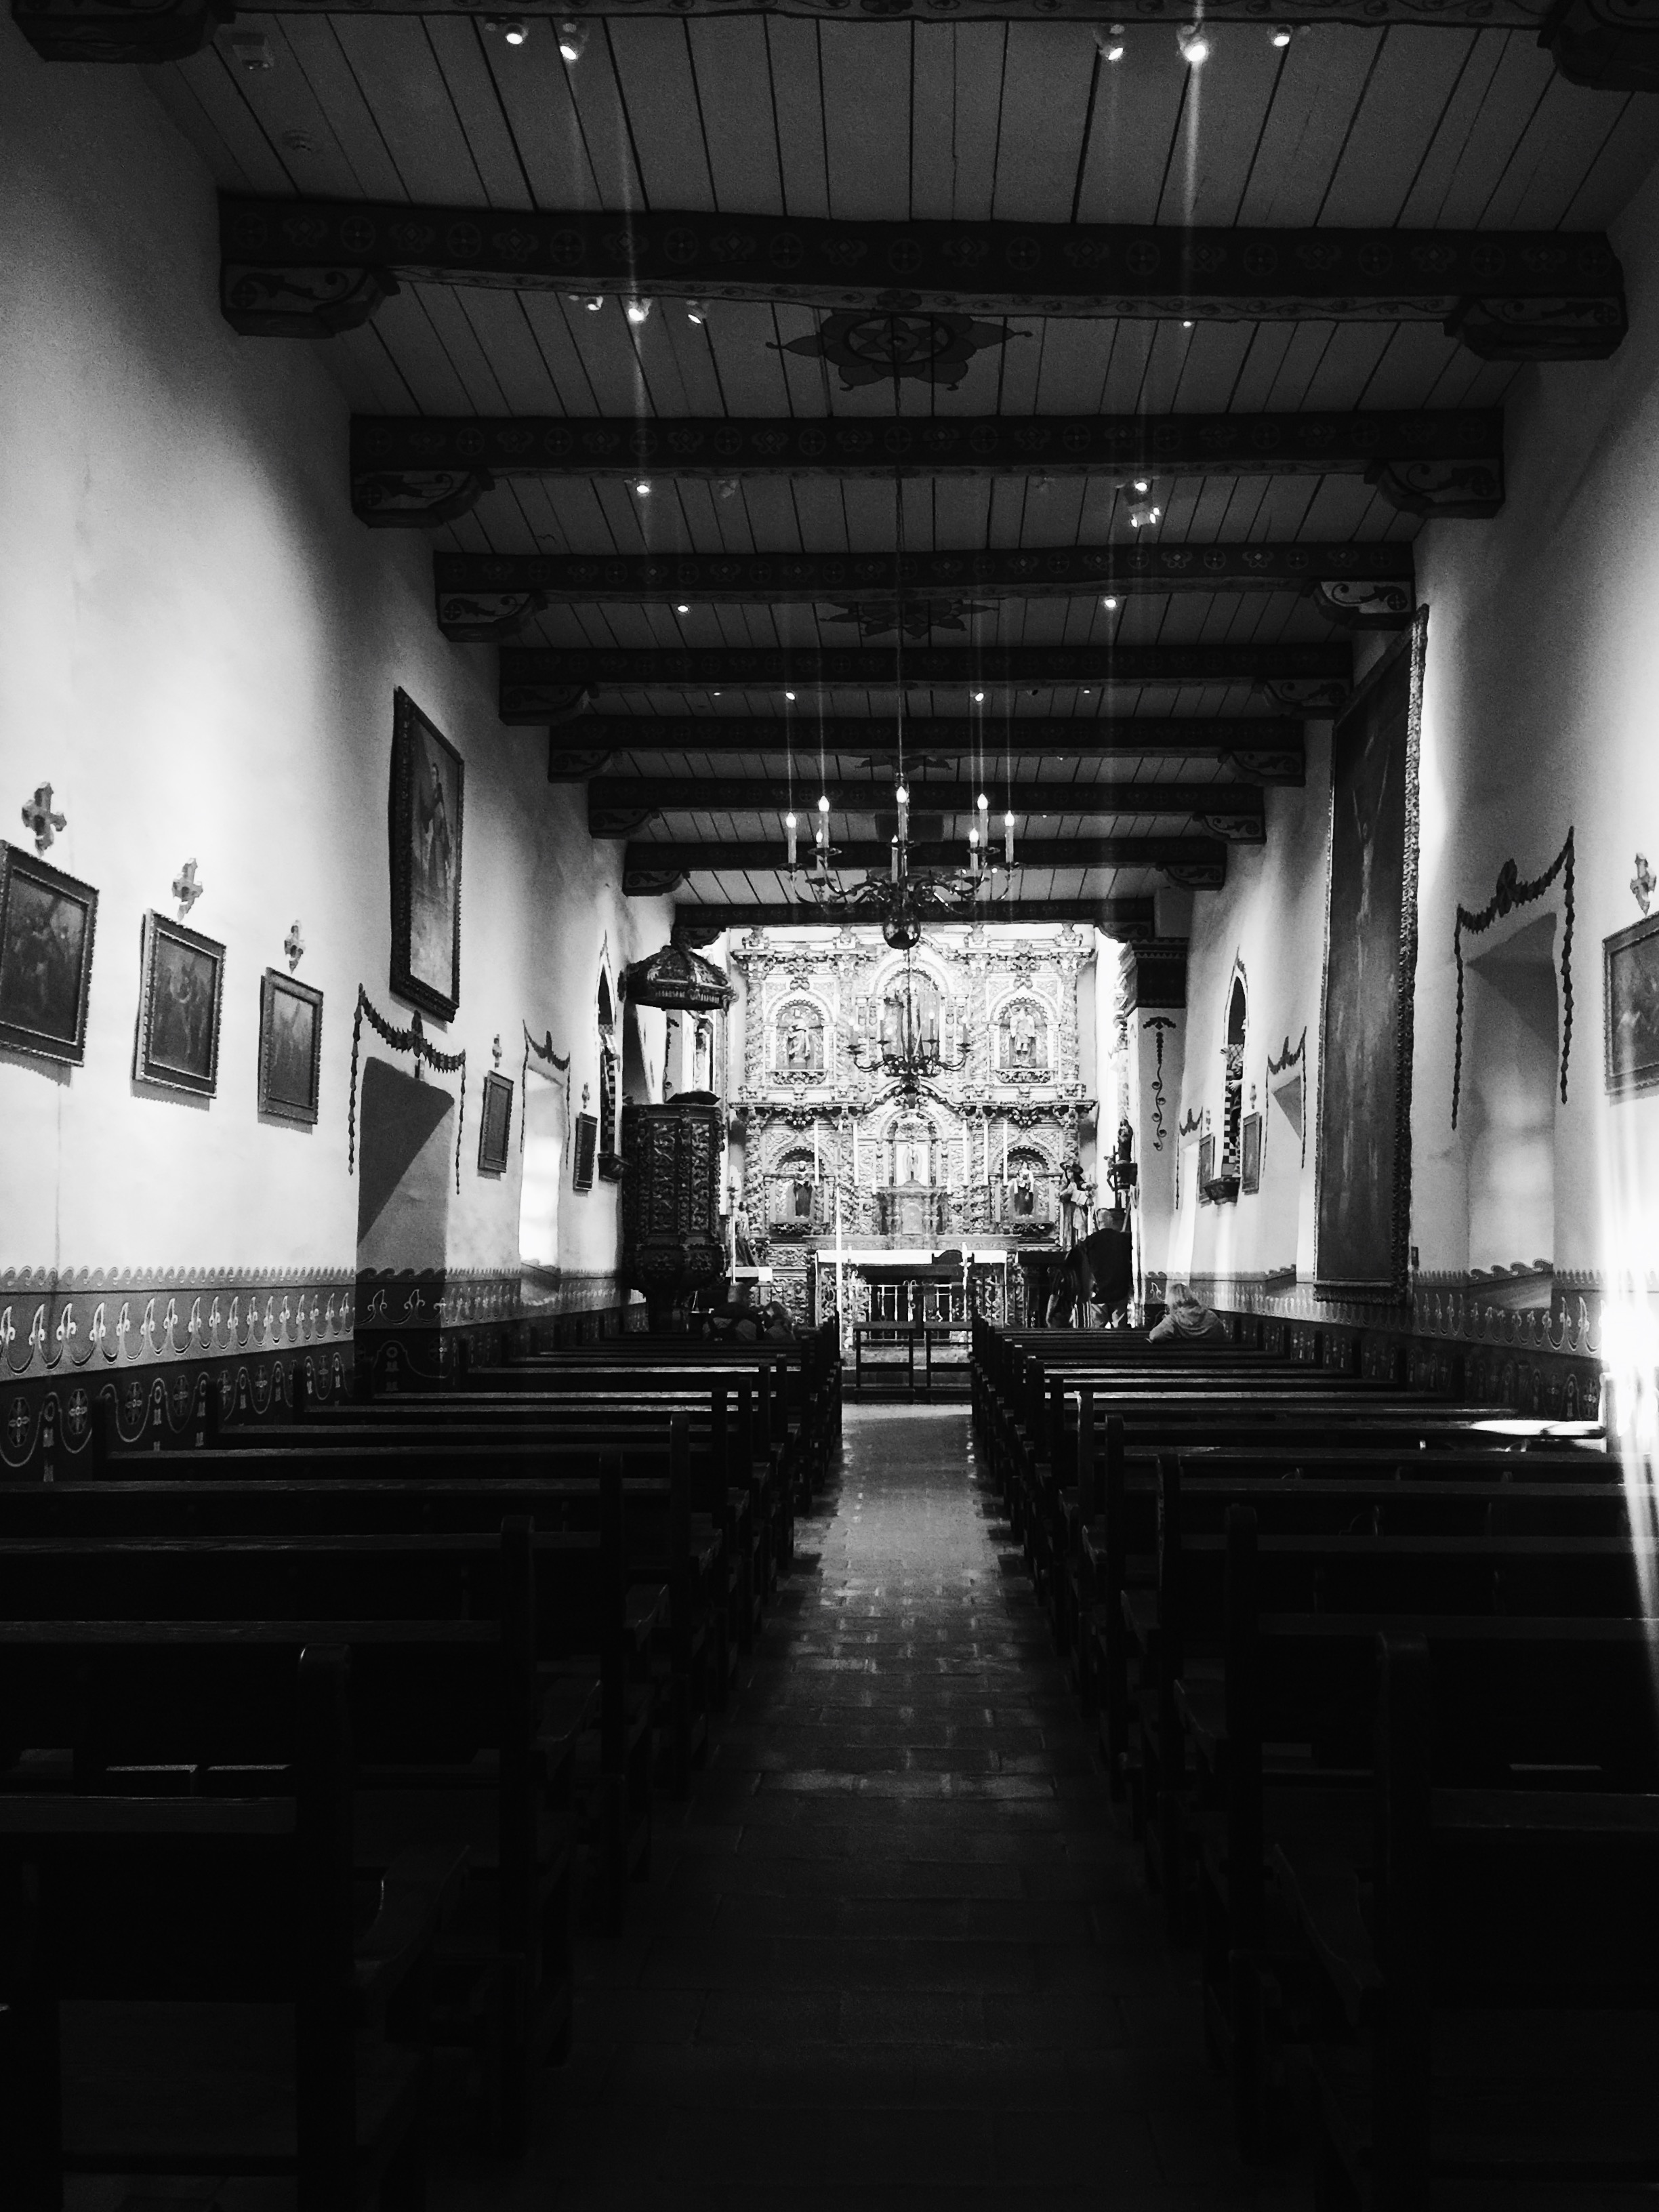 San Juan Capistrano has the distinction of being home to the oldest building in California still in use: this chapel, called Serra's Chapel, was built in 1782.